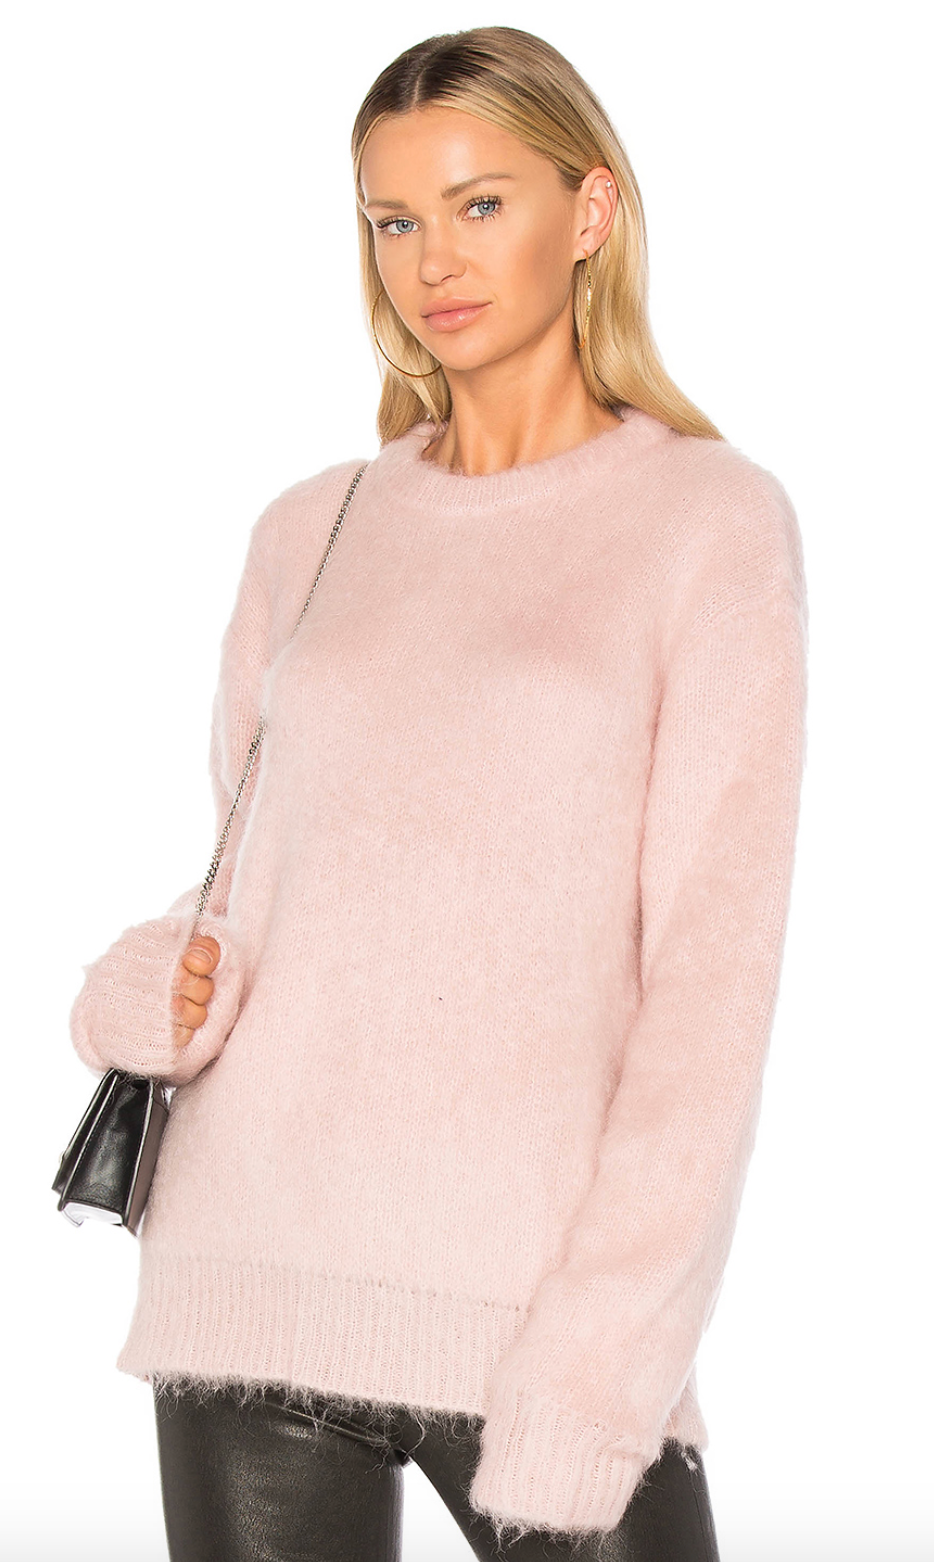 SIMILAR: CARVEN |  MOHAIR SWEATER